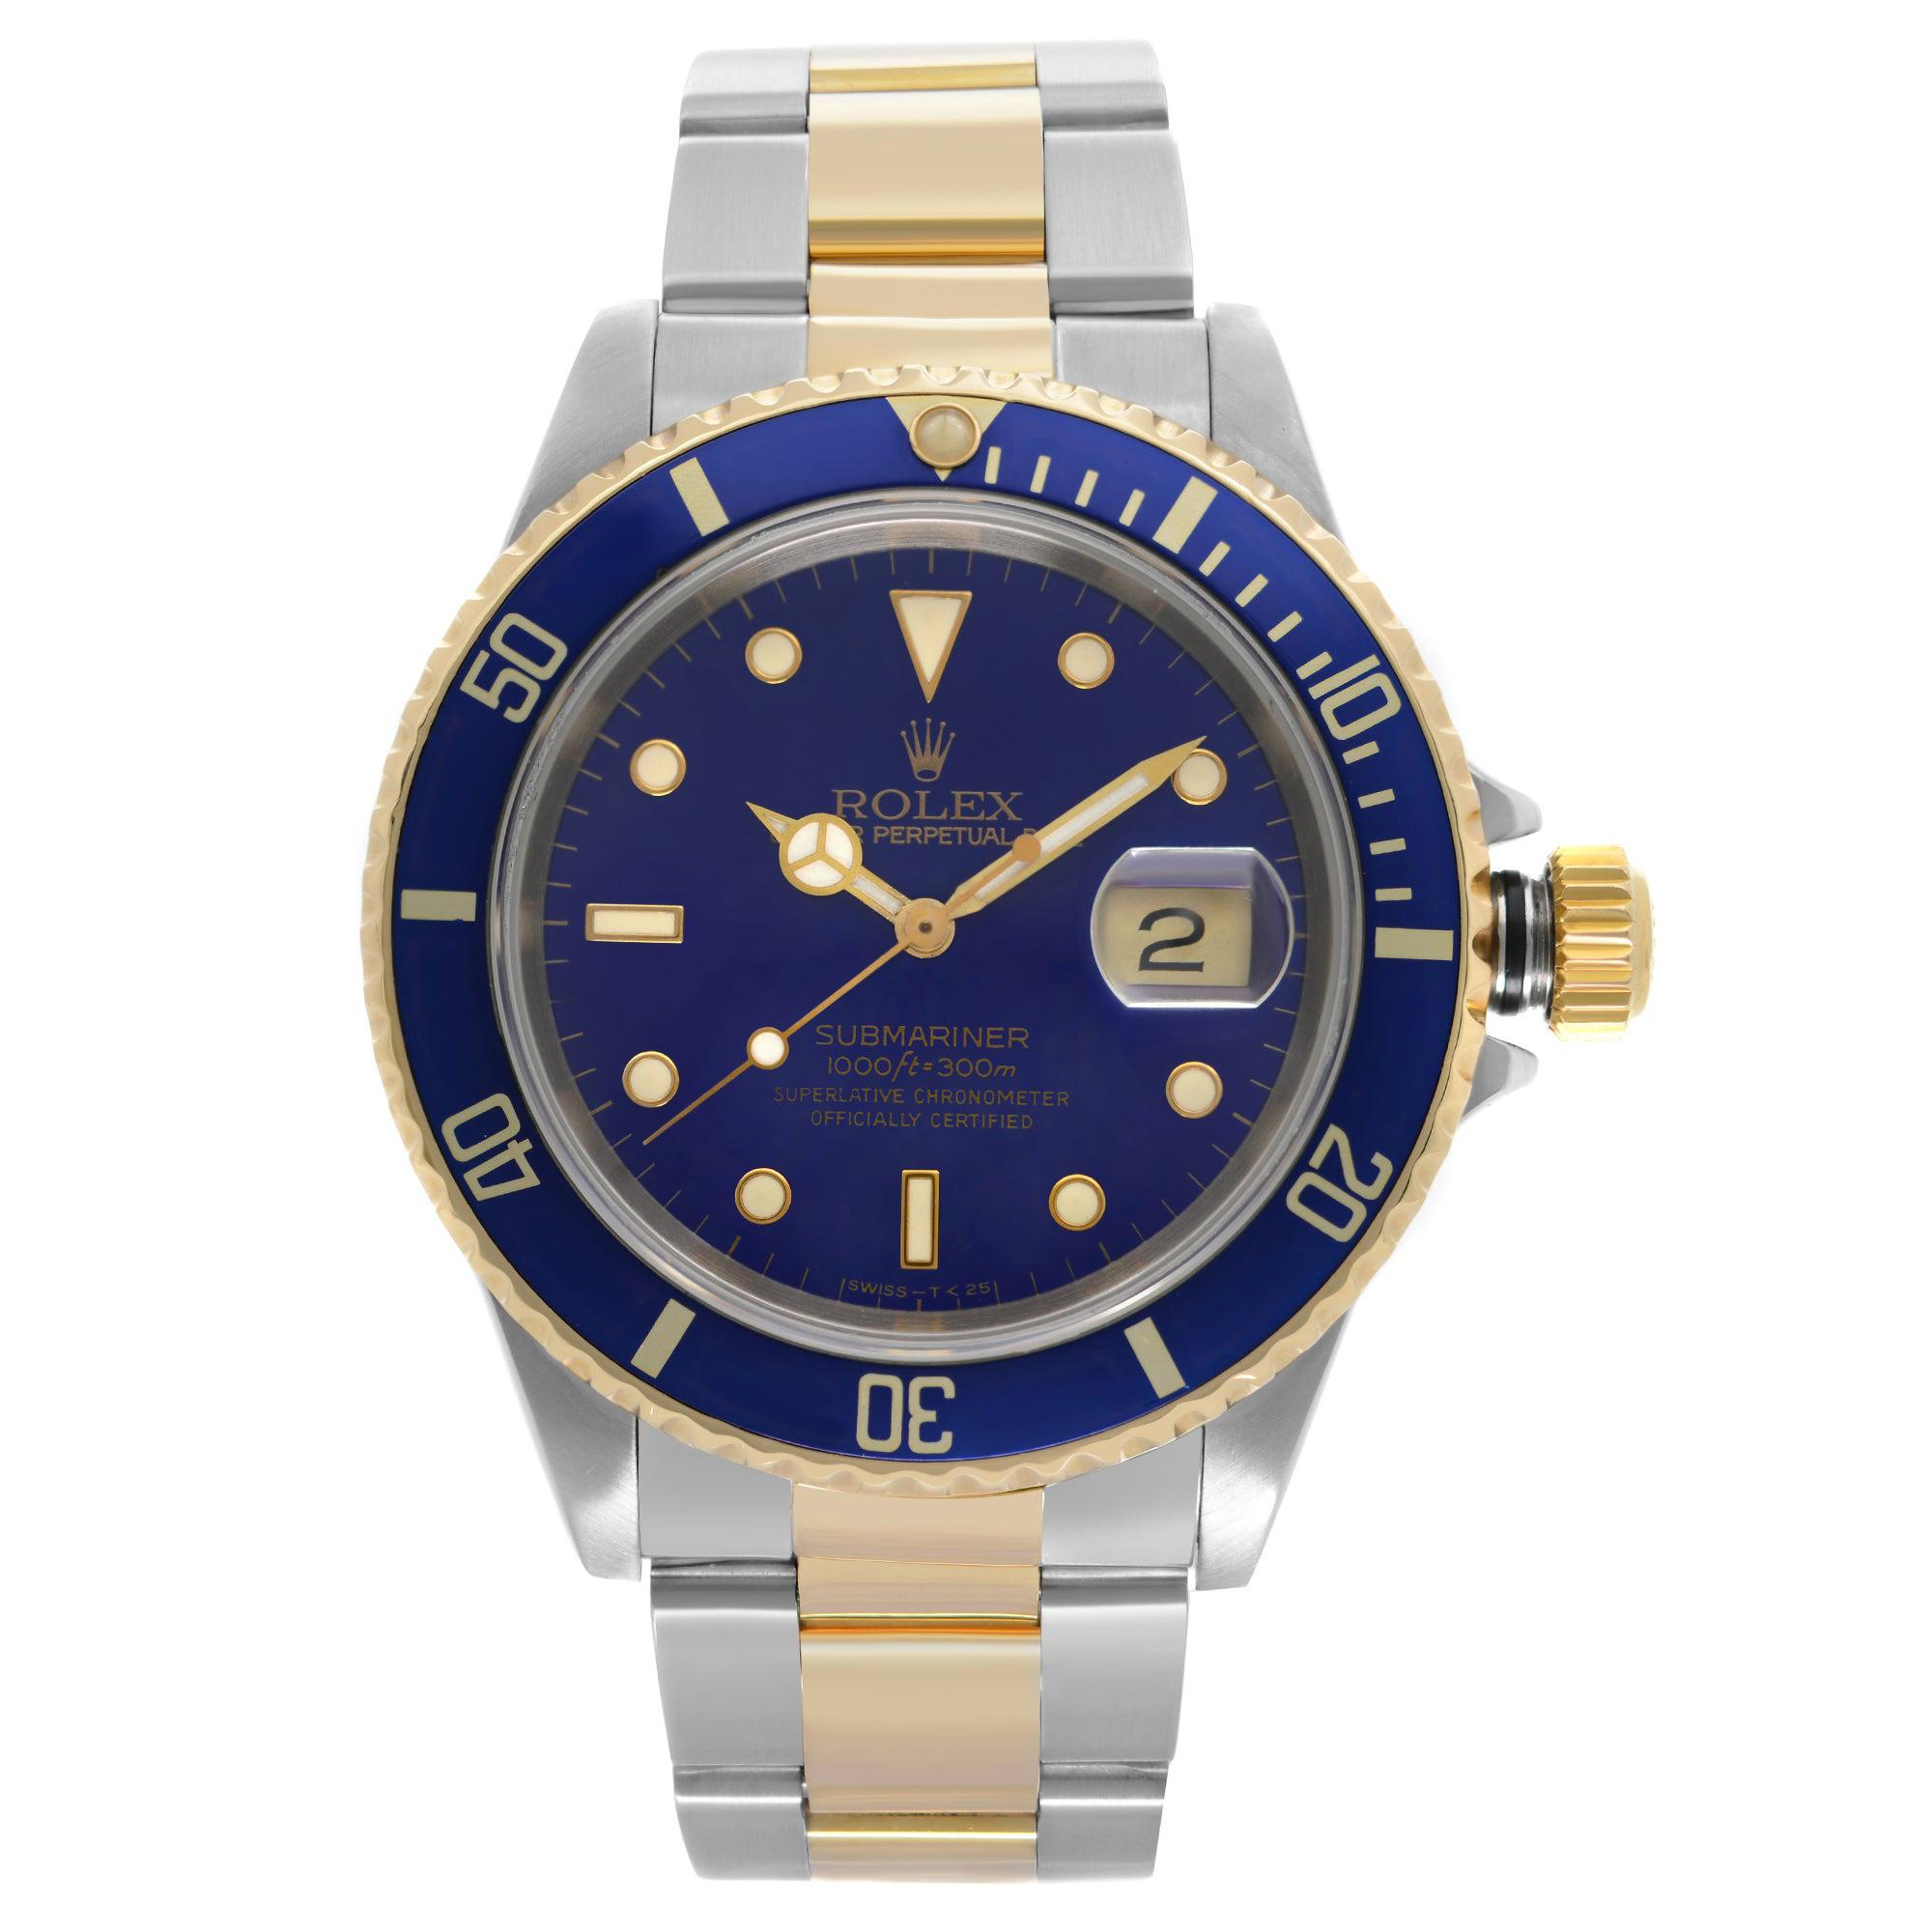 Rolex Submariner 18k Yellow Gold Steel Blue Dial Automatic Mens Watch 16613